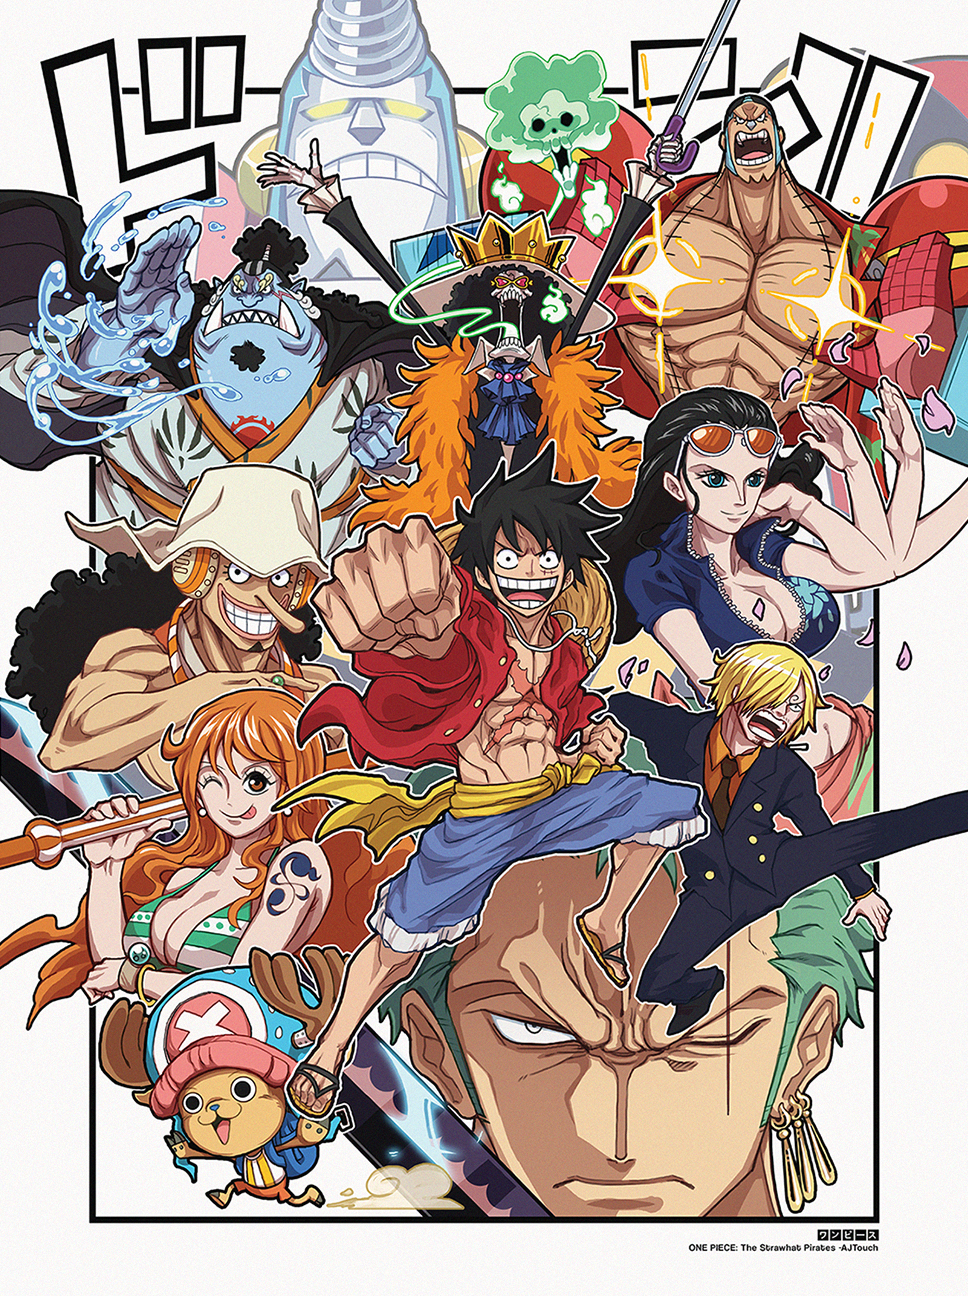 The Strawhat Pirates By Ajtouch On Deviantart In 2020 One Piece Wallpaper Iphone One Piece Drawing One Piece Anime